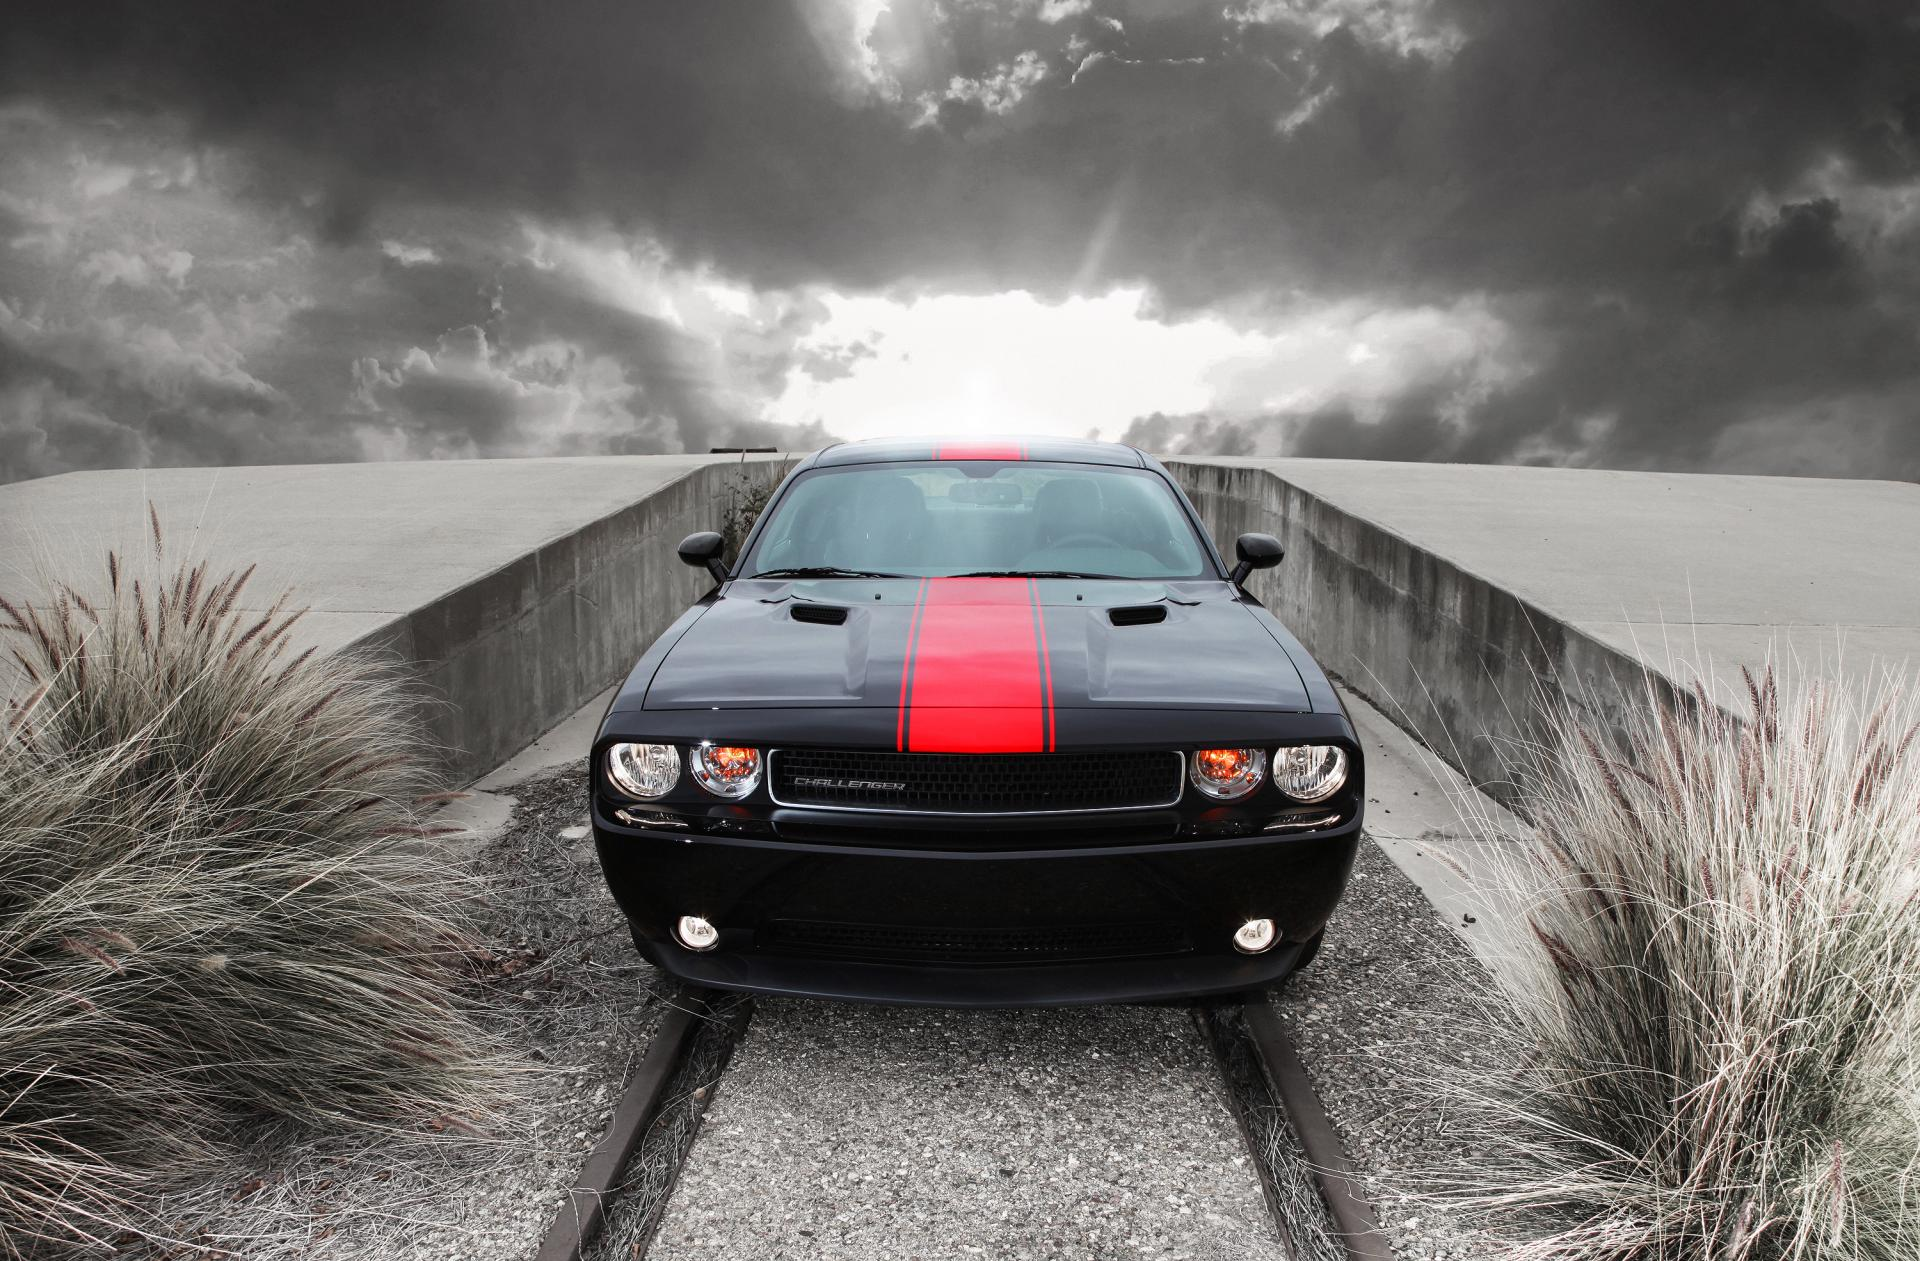 1920x1261 - Dodge Challenger Rallye Wallpapers 16